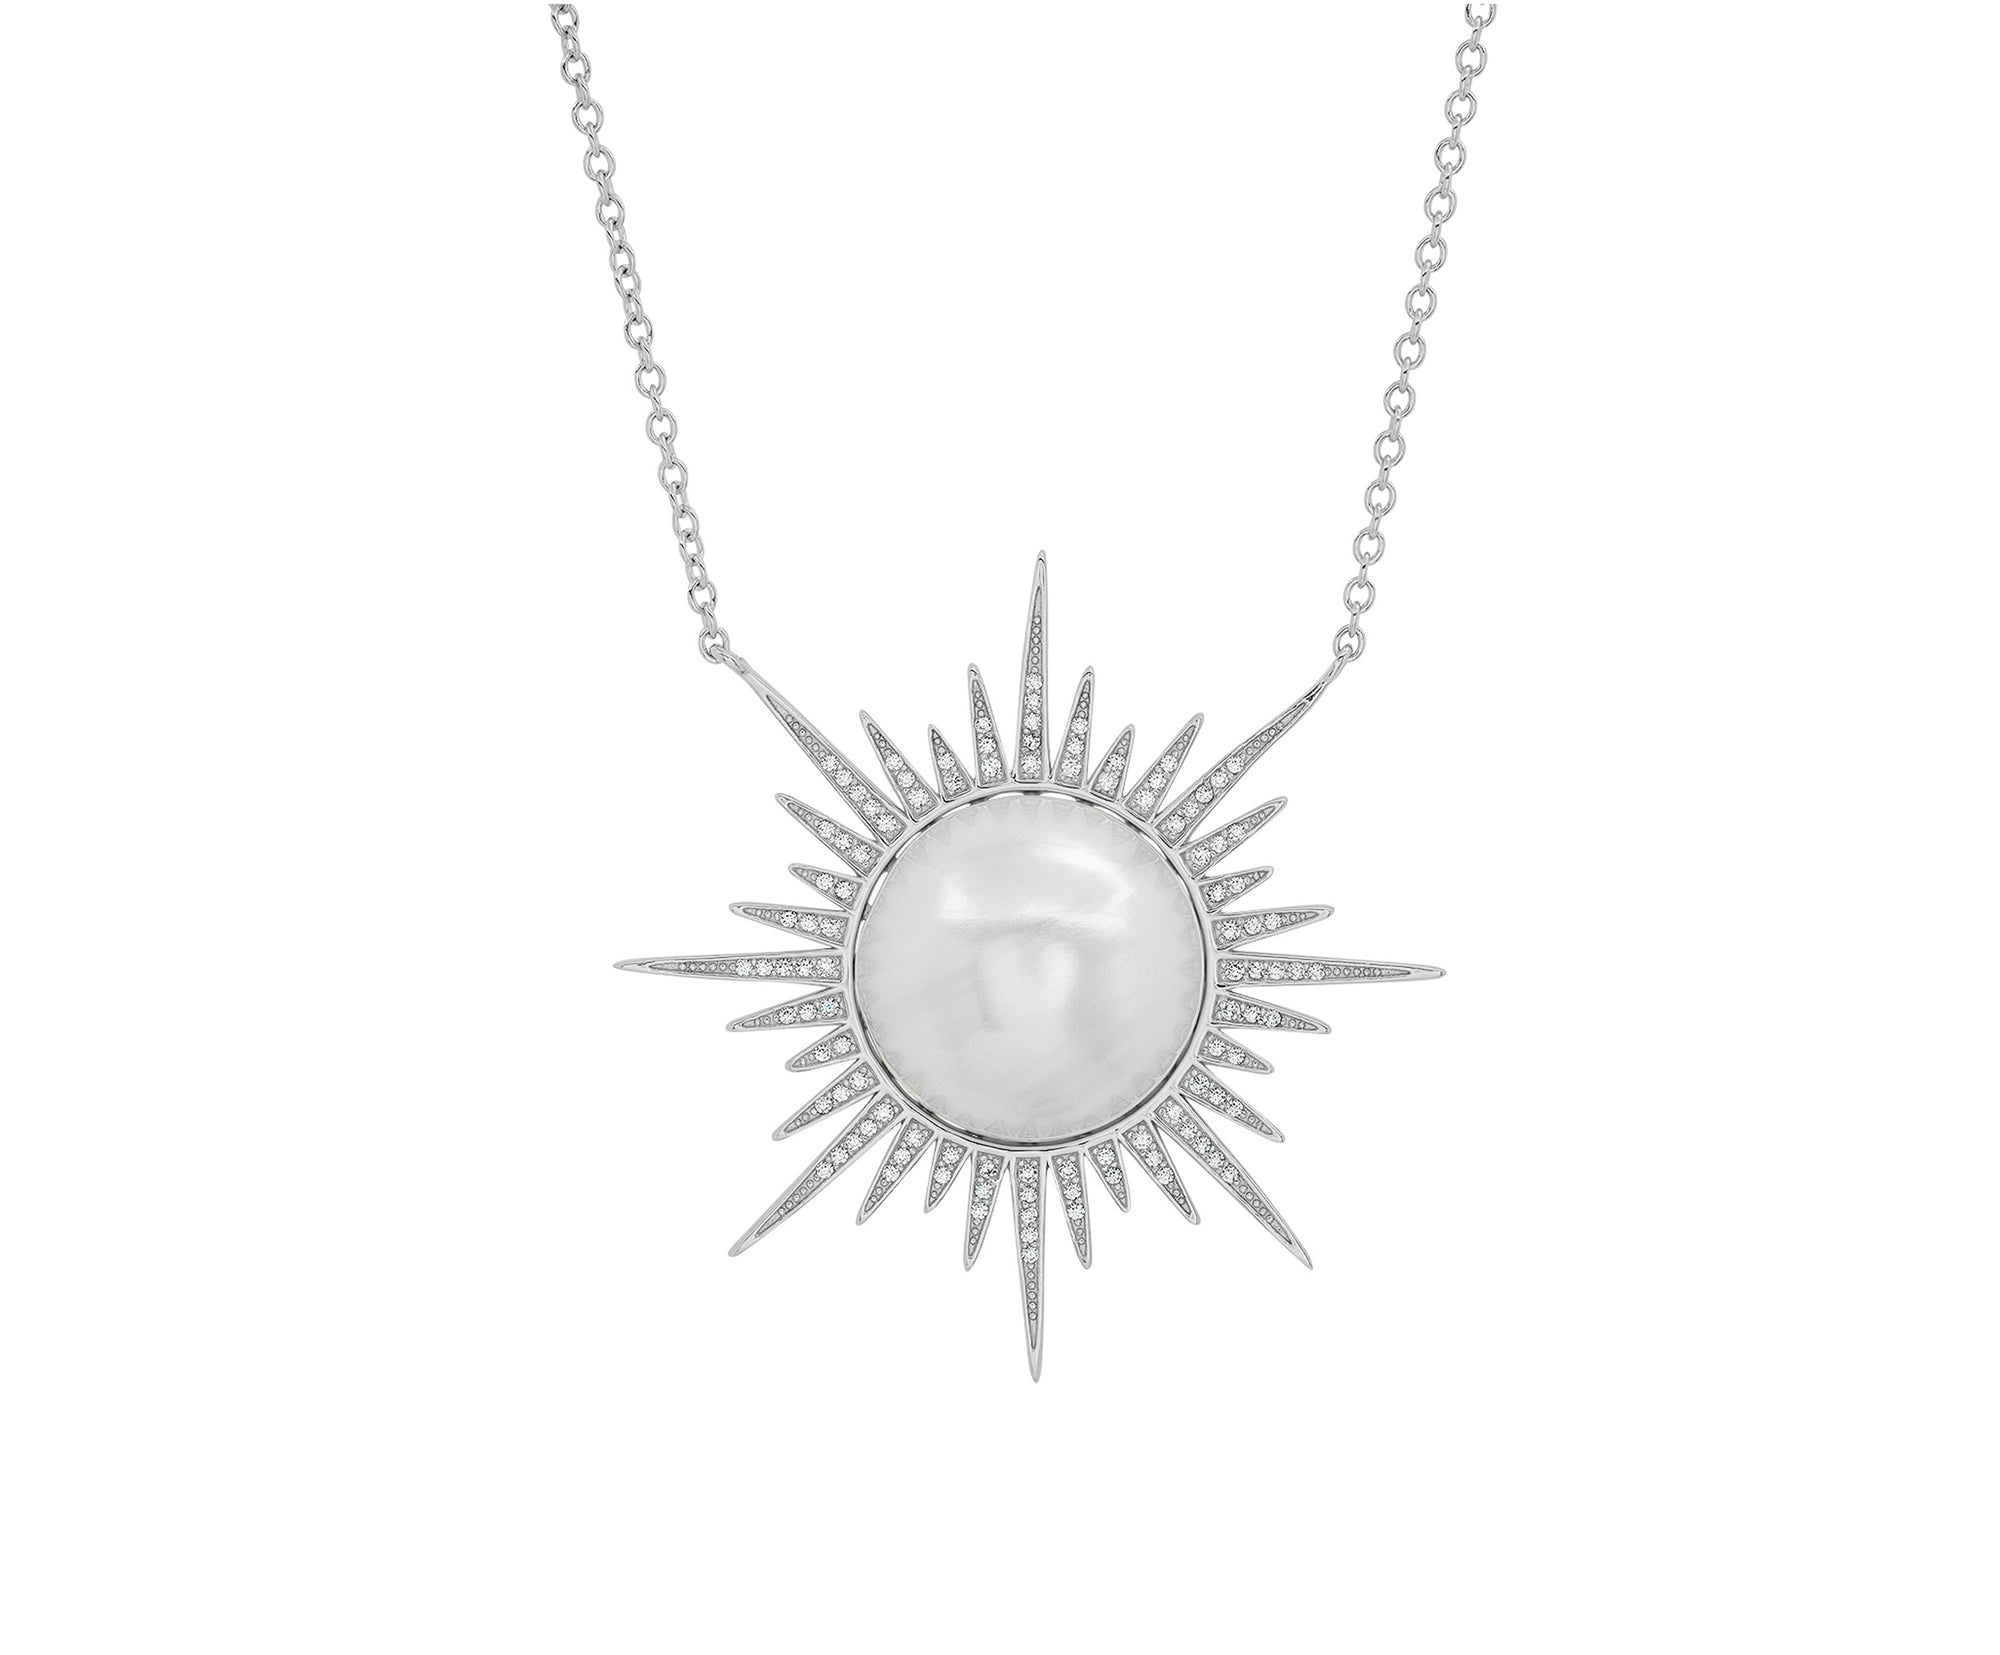 Sunburst Necklace in Sterling Silver